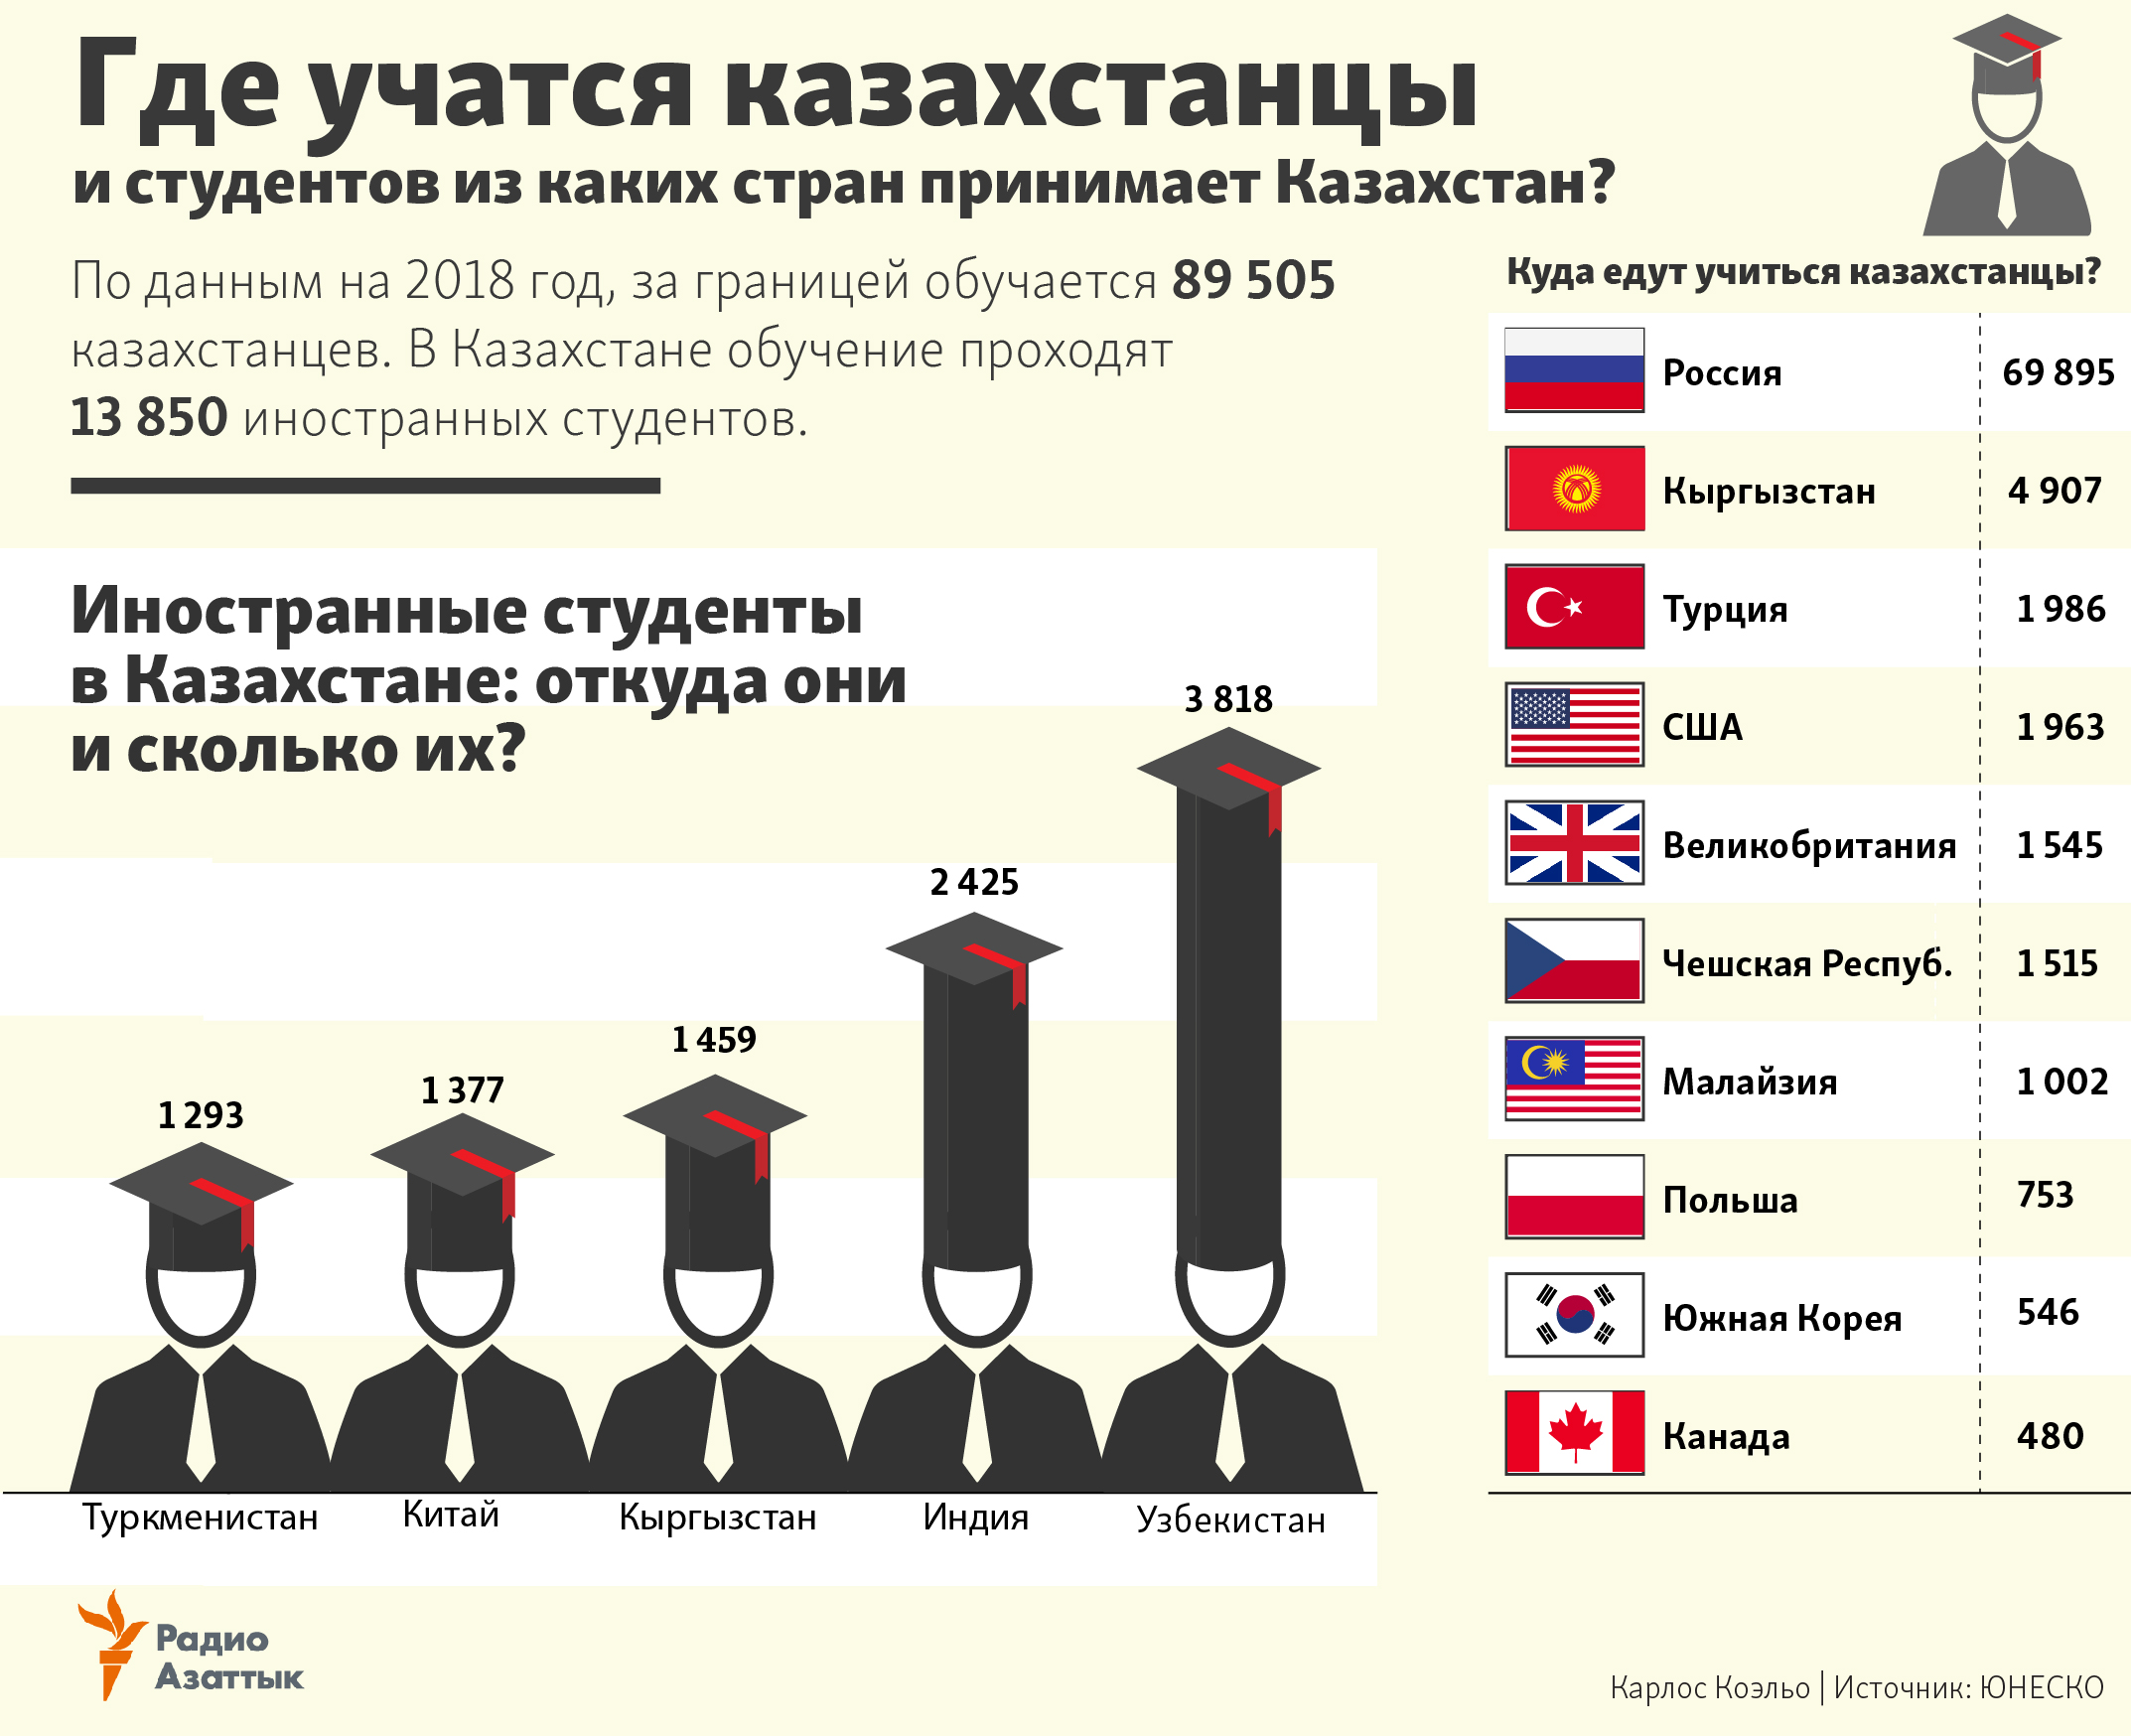 Students in Kazakhstan and abroad